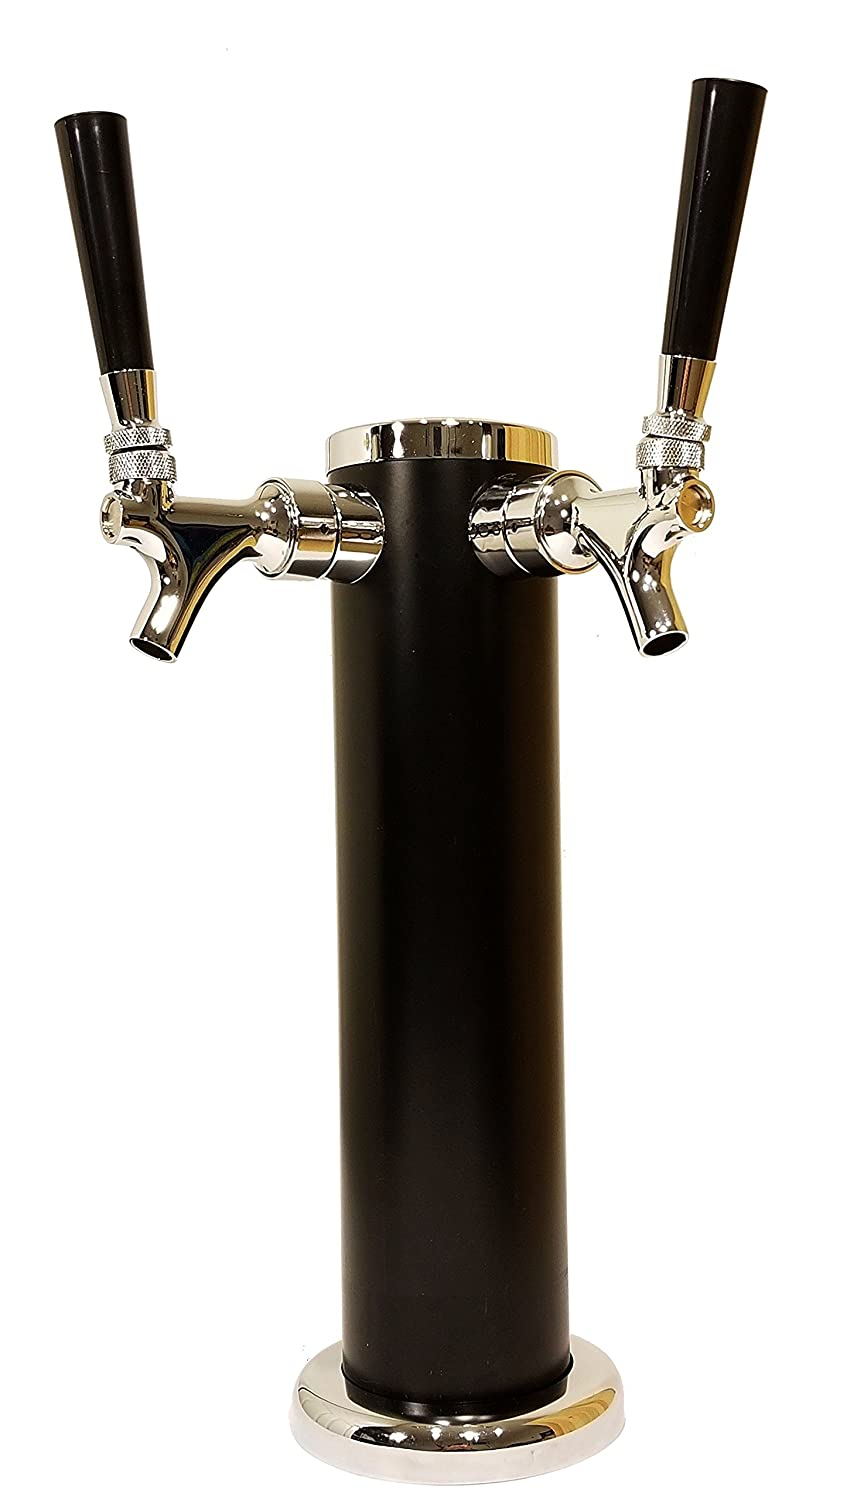 "DOUBLE TAP DRAFT BEER TOWER - 2-TAP BEER COLUMN 13"" HIGH 3"" DIAMETER - STAINLESS STEEL BODY WITH UNIQUE BLACK SATIN FINISH - CHROME FINISH FAUCETS - BEERGON BT-1000"